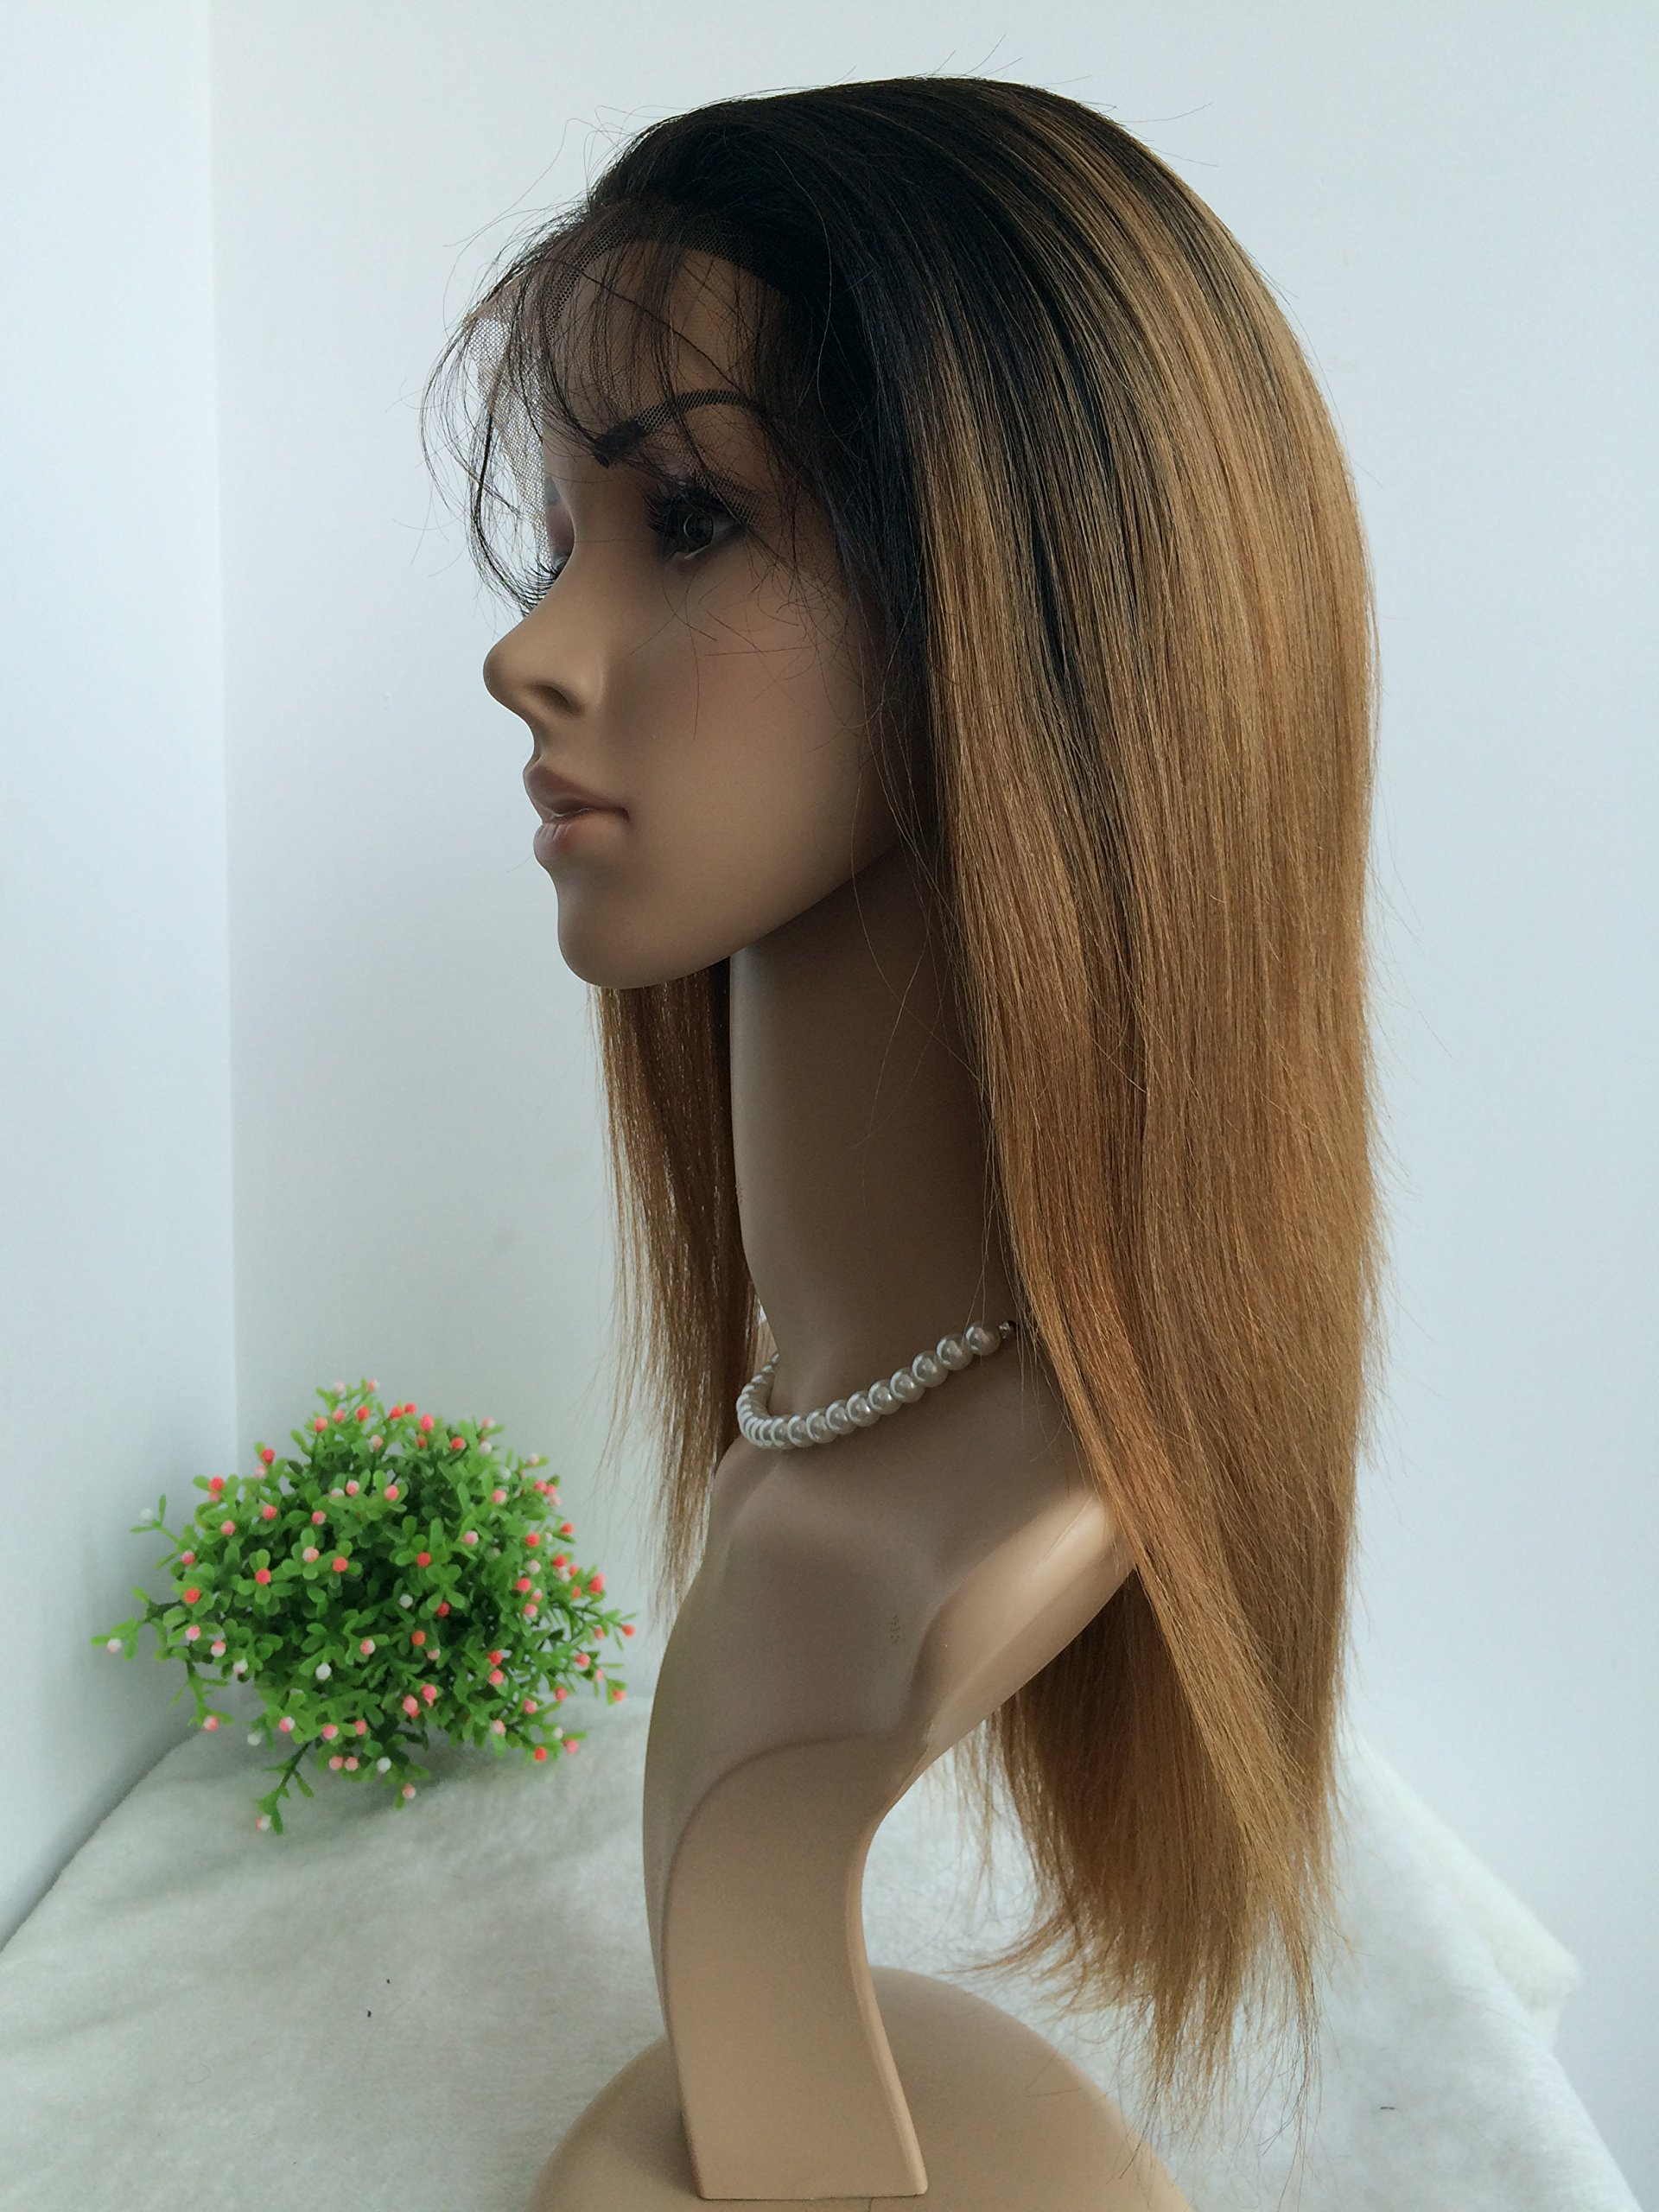 CHINESE VIRGIN 10 INCH,LIGHT YAKI,FULL LACE WIGS SILK TOP,BLEACHED KNOTS--hot sale product!!! by April silk top wigs (Image #1)